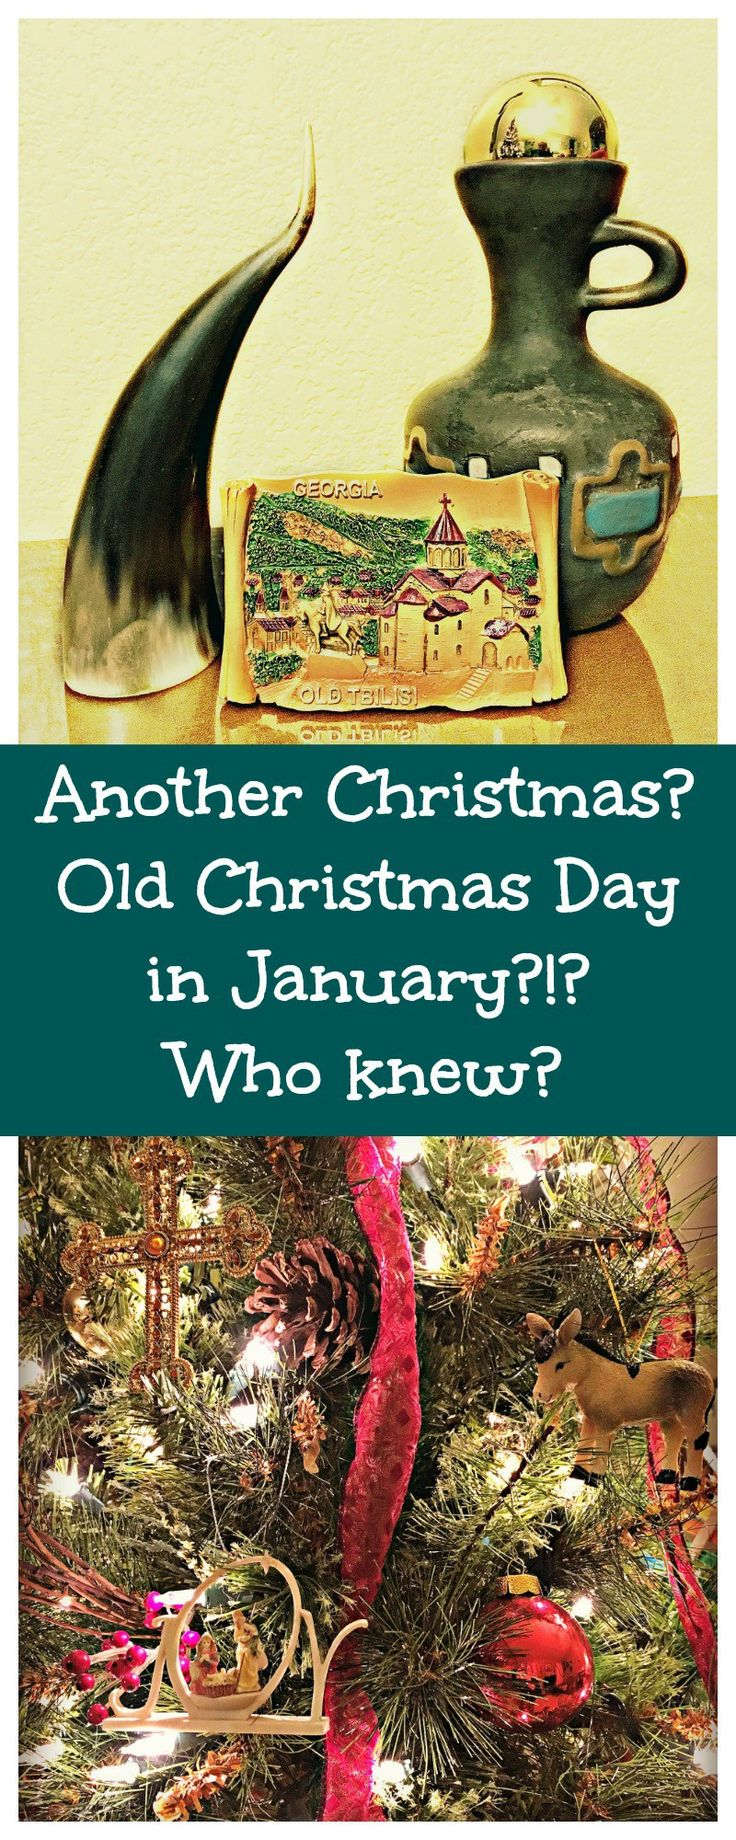 Another Christmas? Old Christmas Day in January? Who knew? It's that time of year again, the period after December 25 when we still have decorations...